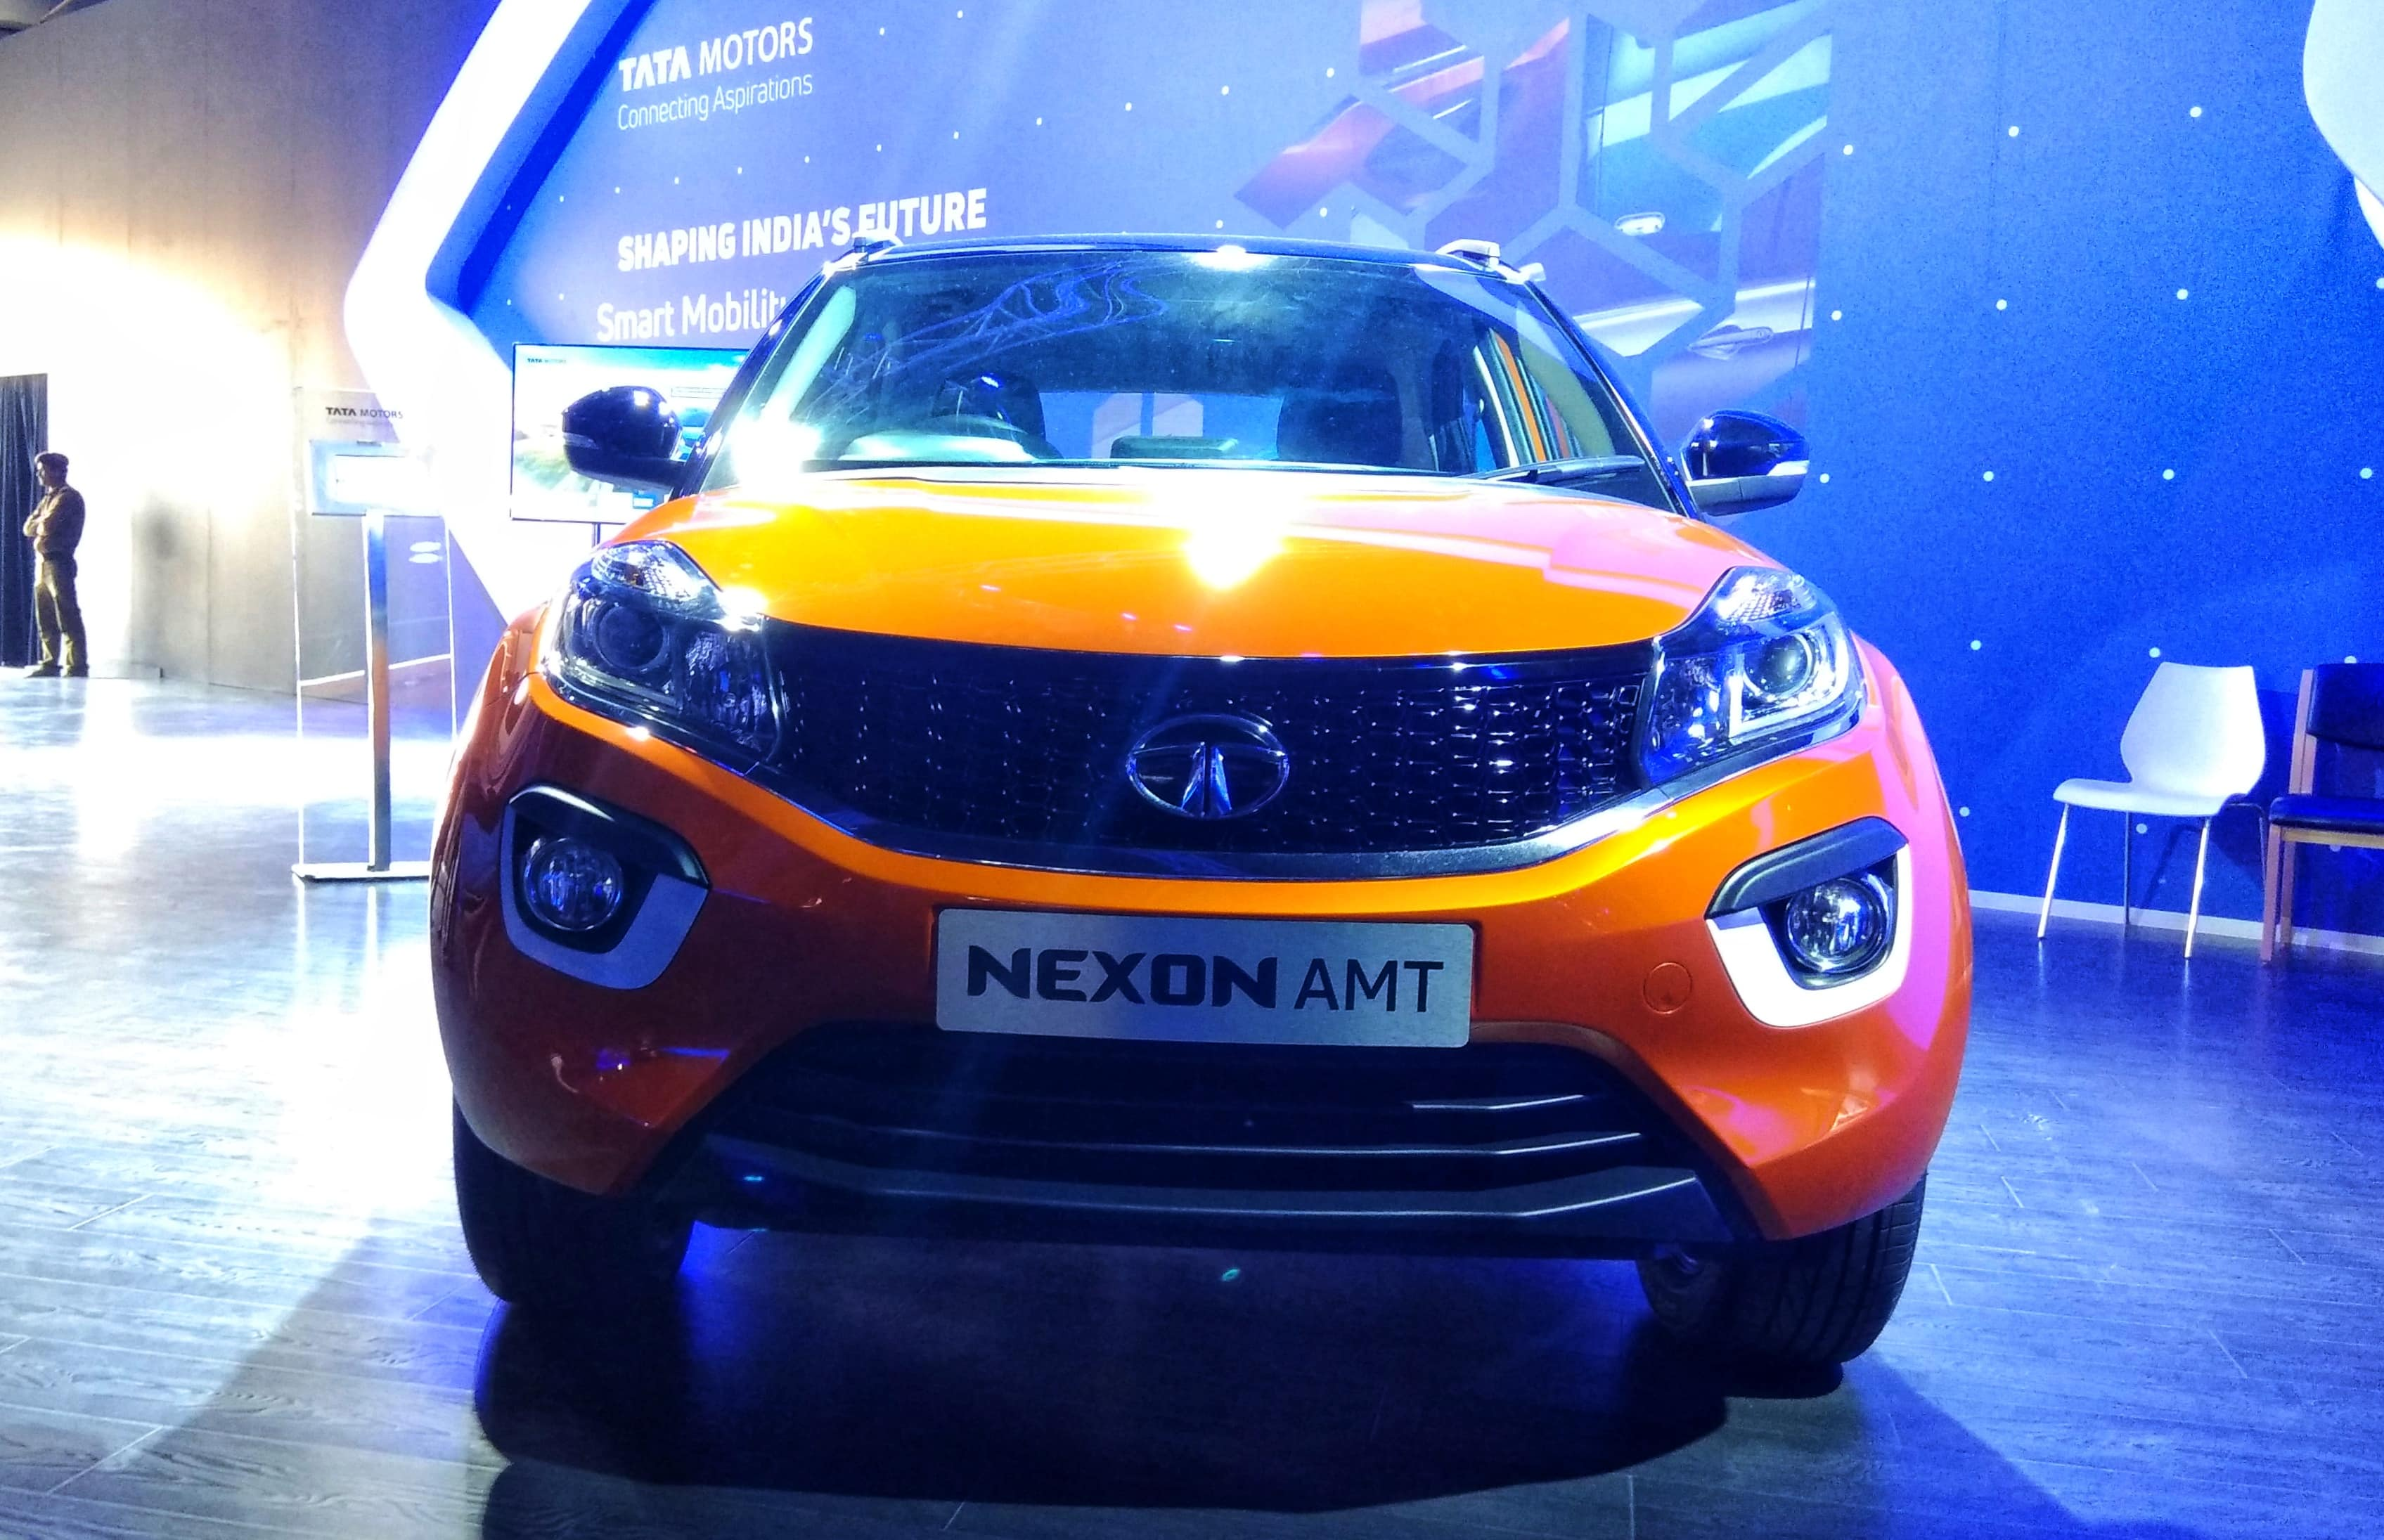 Tata Nexon AMT Bookings Opens at INR 11,000; Launch Date, Price in India, Specs, Features